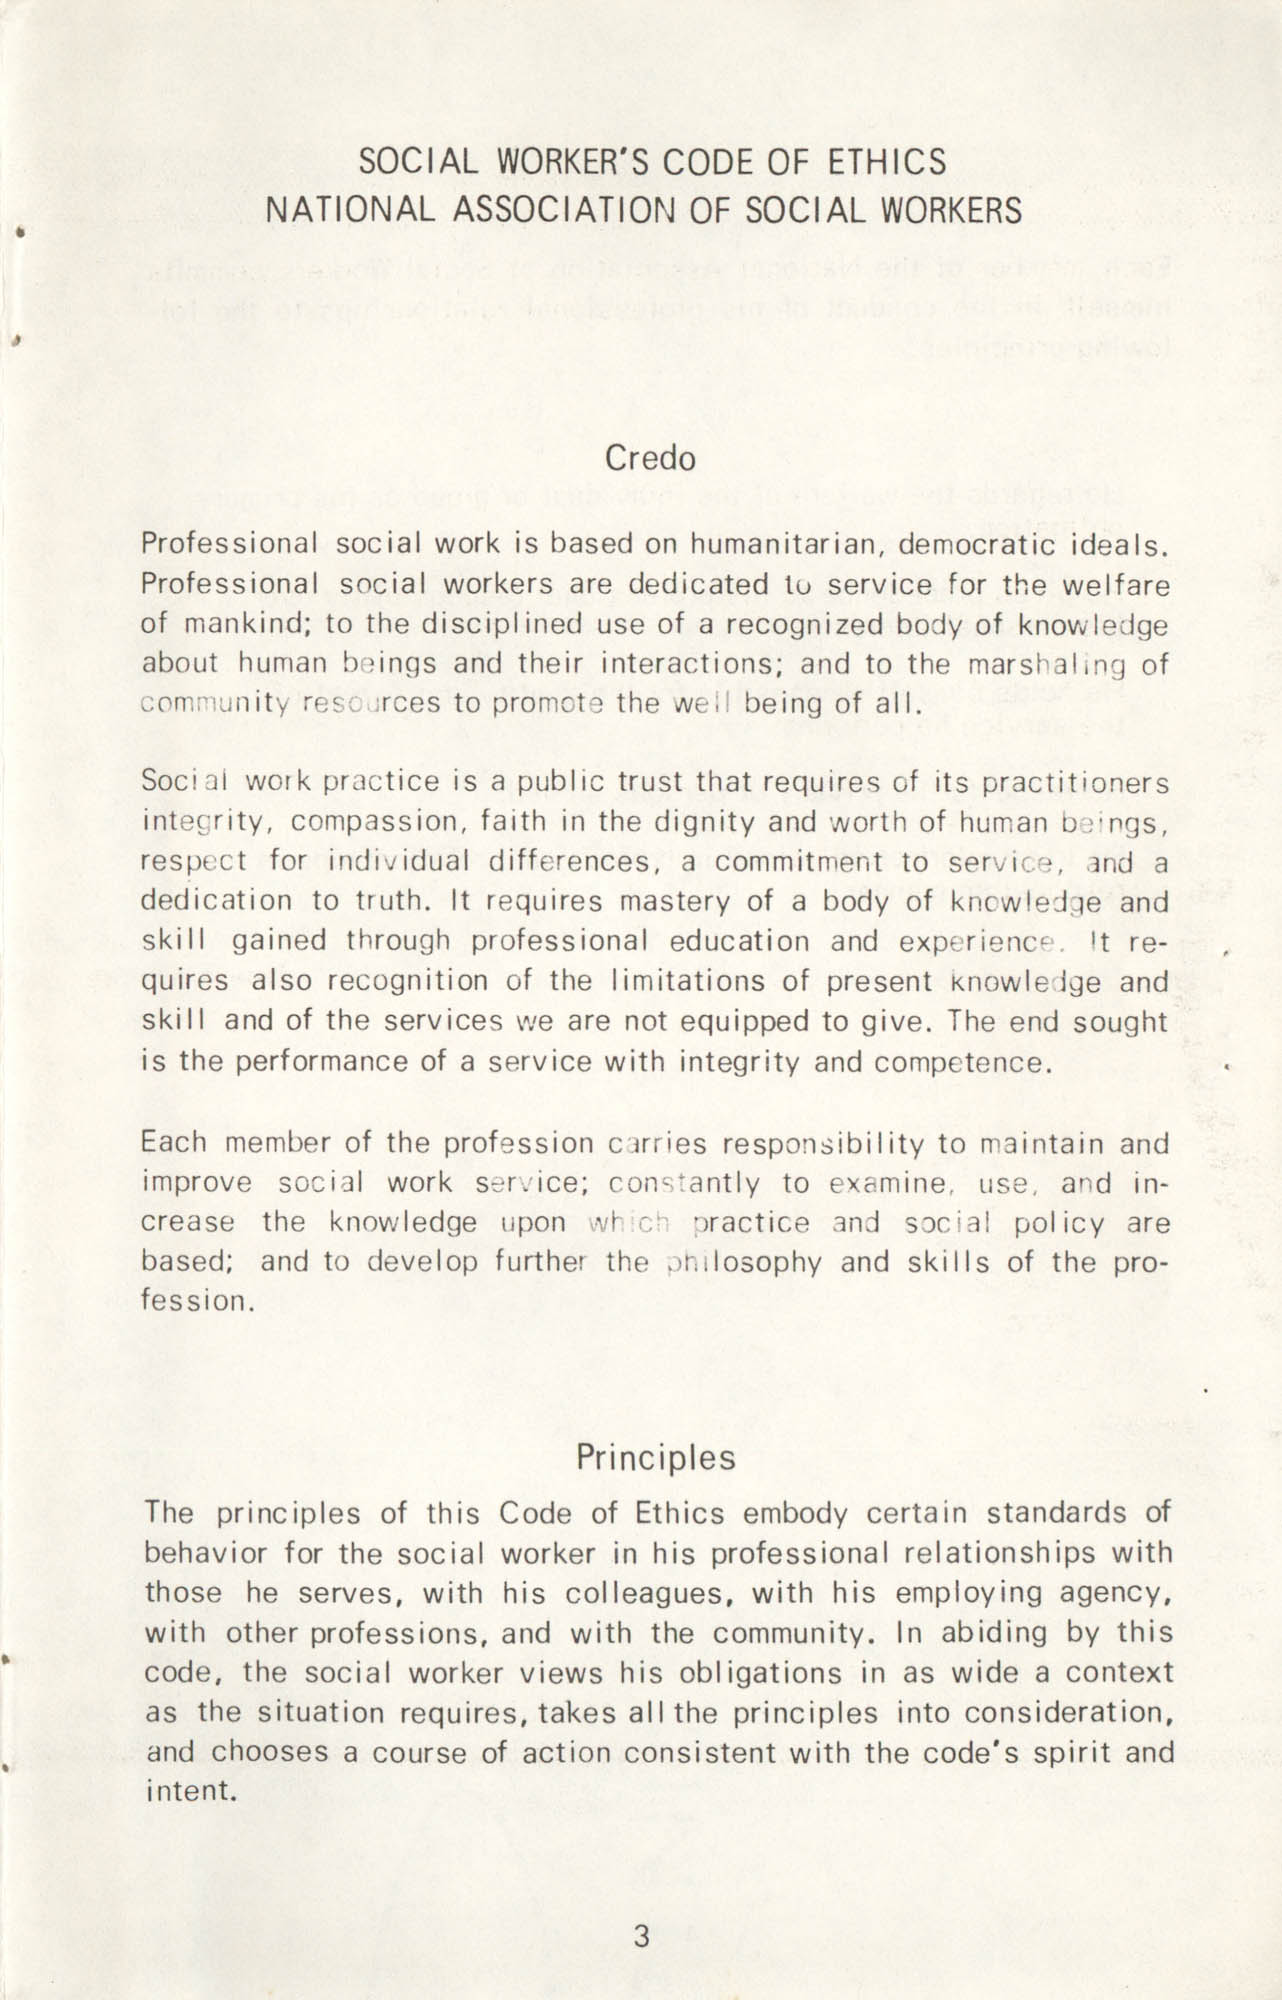 State of South Carolina Directory of Registered Social Workers, 1972, Page 3